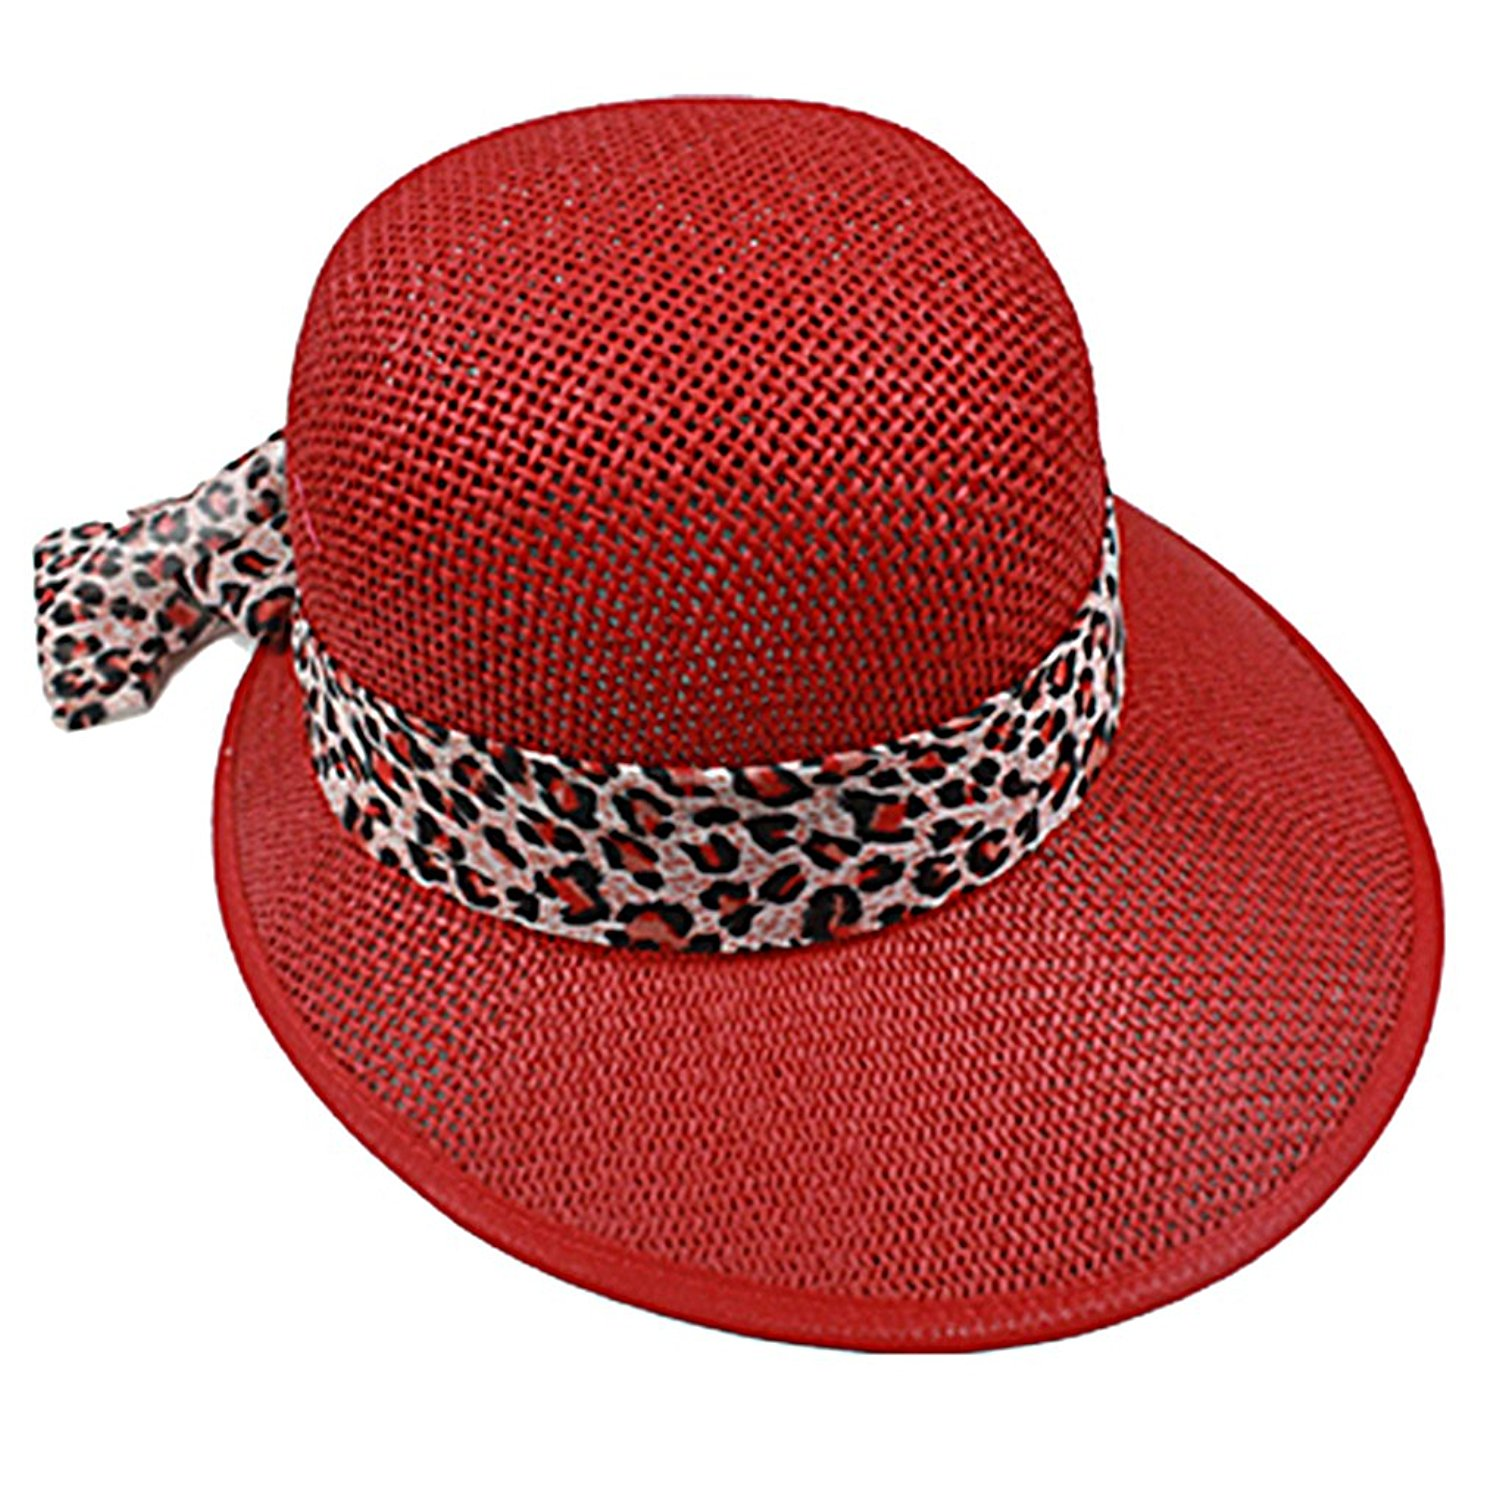 SILVERFEVER Silver Fever Women Summer Fancy Sun Hat Fits All (Red with Cheetah)